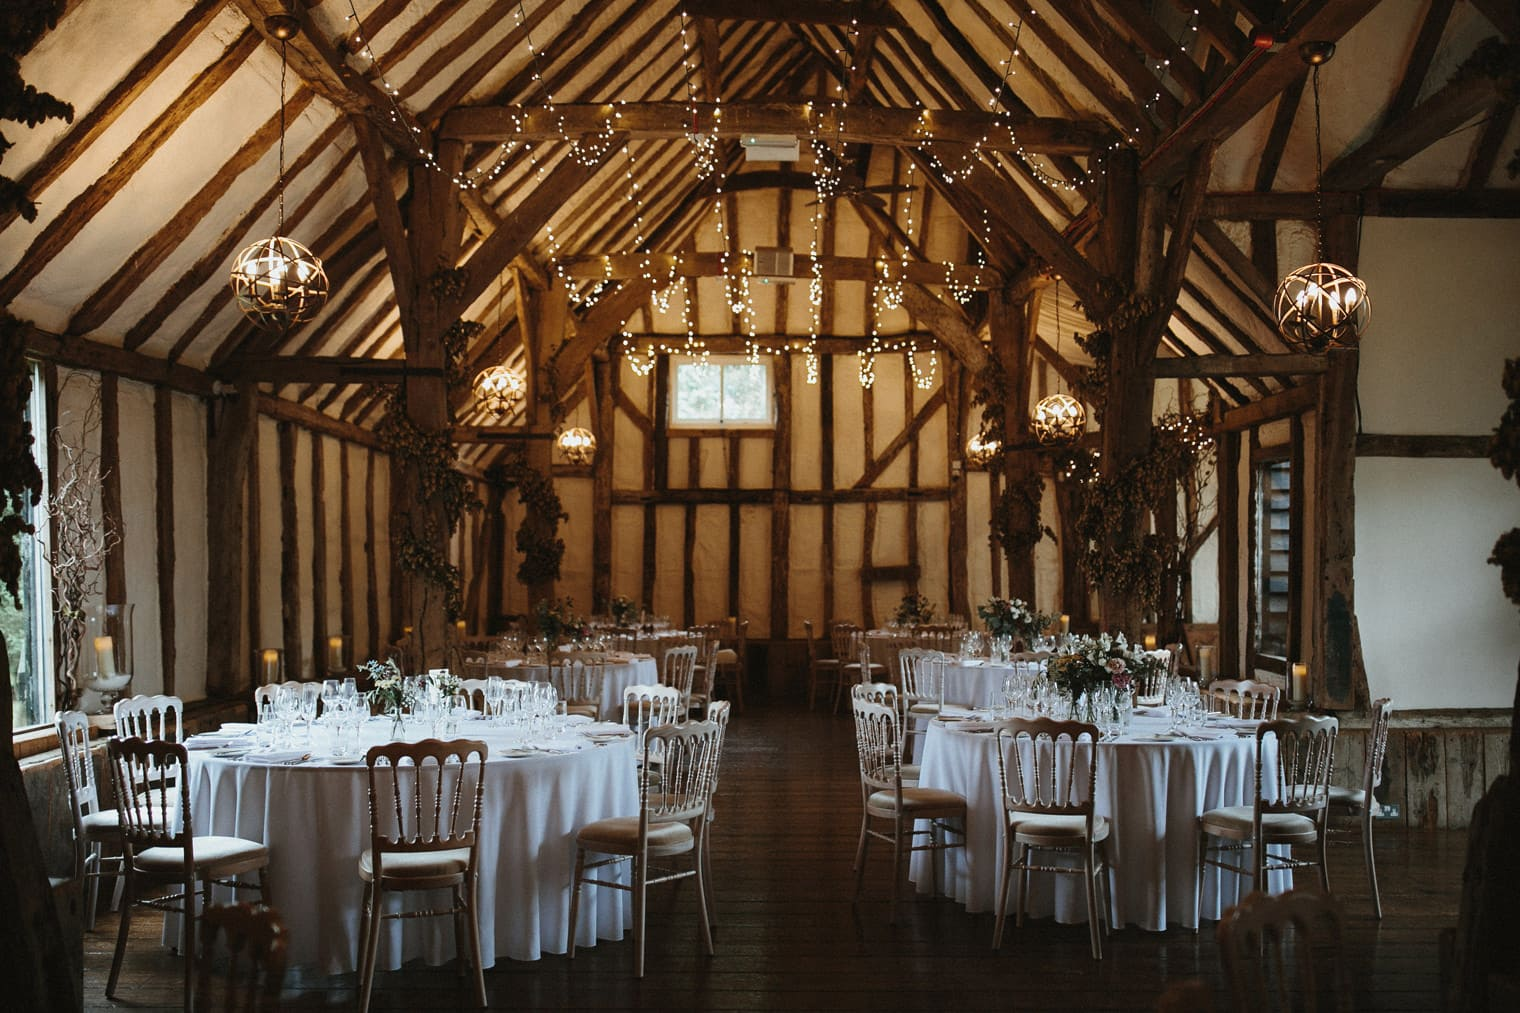 English Barn Wedding venue in Canterbury, Kent